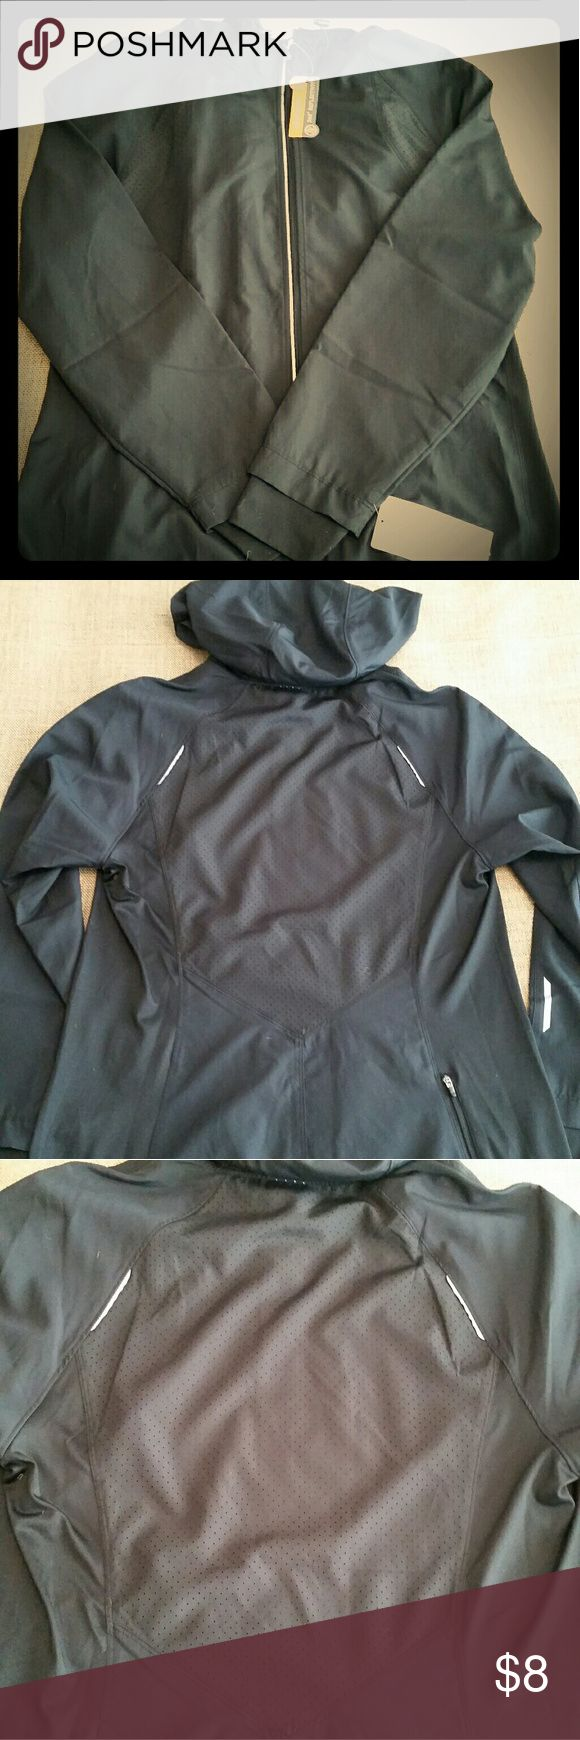 Champion Light Hooded Jacket This black size Large ladies light jacket is perfect for spring or an early morning workout. More of a windbreaker than a jacket. Has hood and a cool vented back. Brand new with tags. Sleeves feature those finger holes too...this is great for working out. The gray is reflective to keep you safe and there is also a zipper pocket on the rear bottom for easy cell phone storage. Champion Tops Sweatshirts & Hoodies